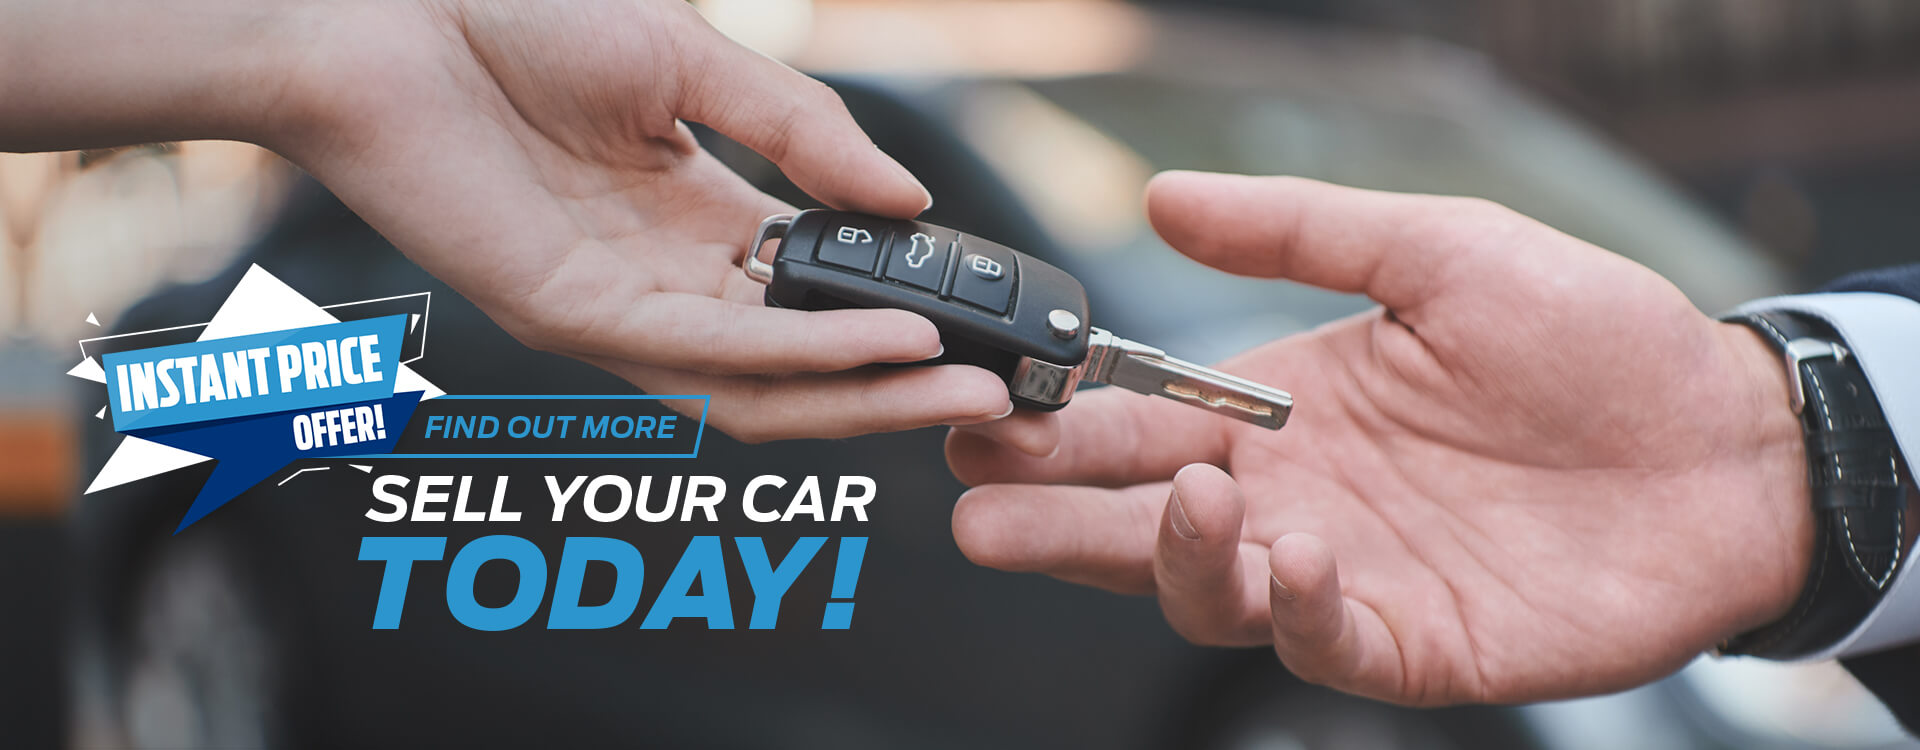 Instant Price Offer! Sell your car today!